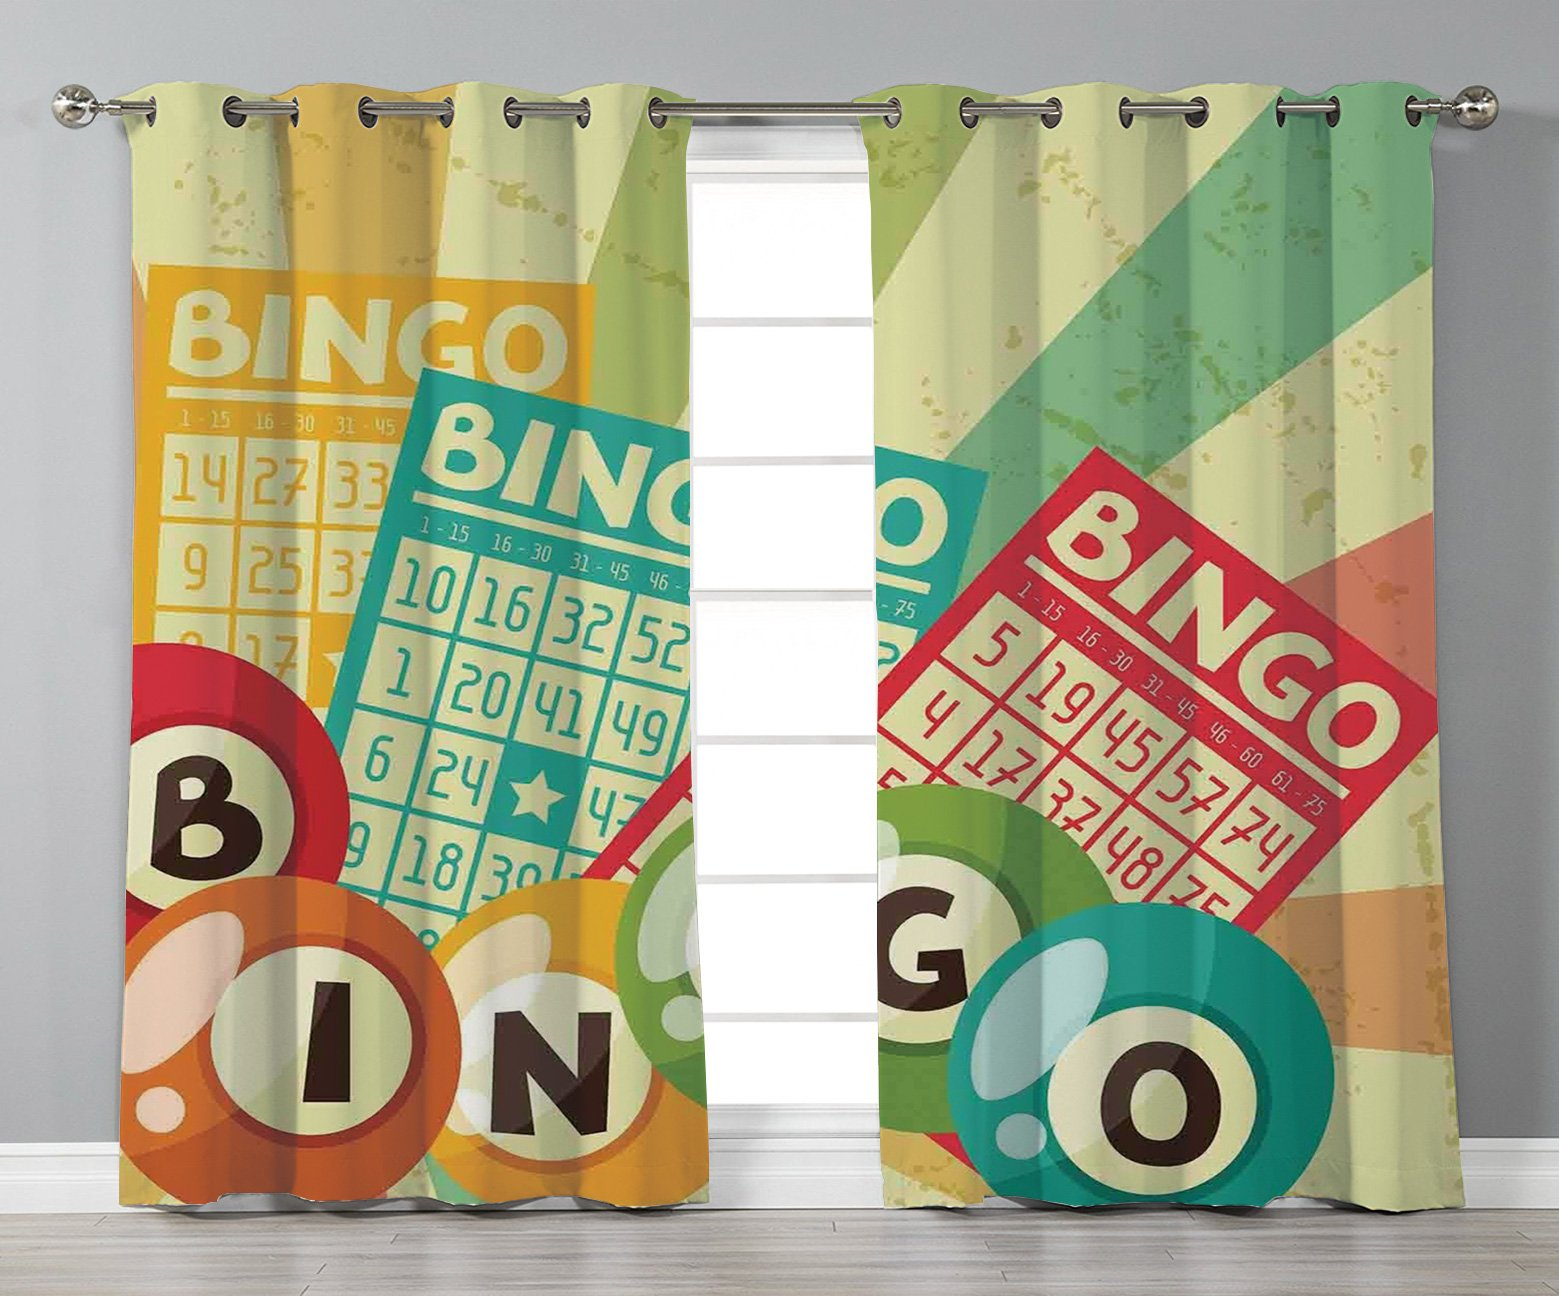 iPrint Satin Grommet Window Curtains,Vintage Decor,Bingo Game with Ball and Cards Pop Art Stylized Lottery Hobby Celebration Theme,Multi,2 Panel Set Window Drapes,for Living Room Bedroom Kitchen Cafe by iPrint